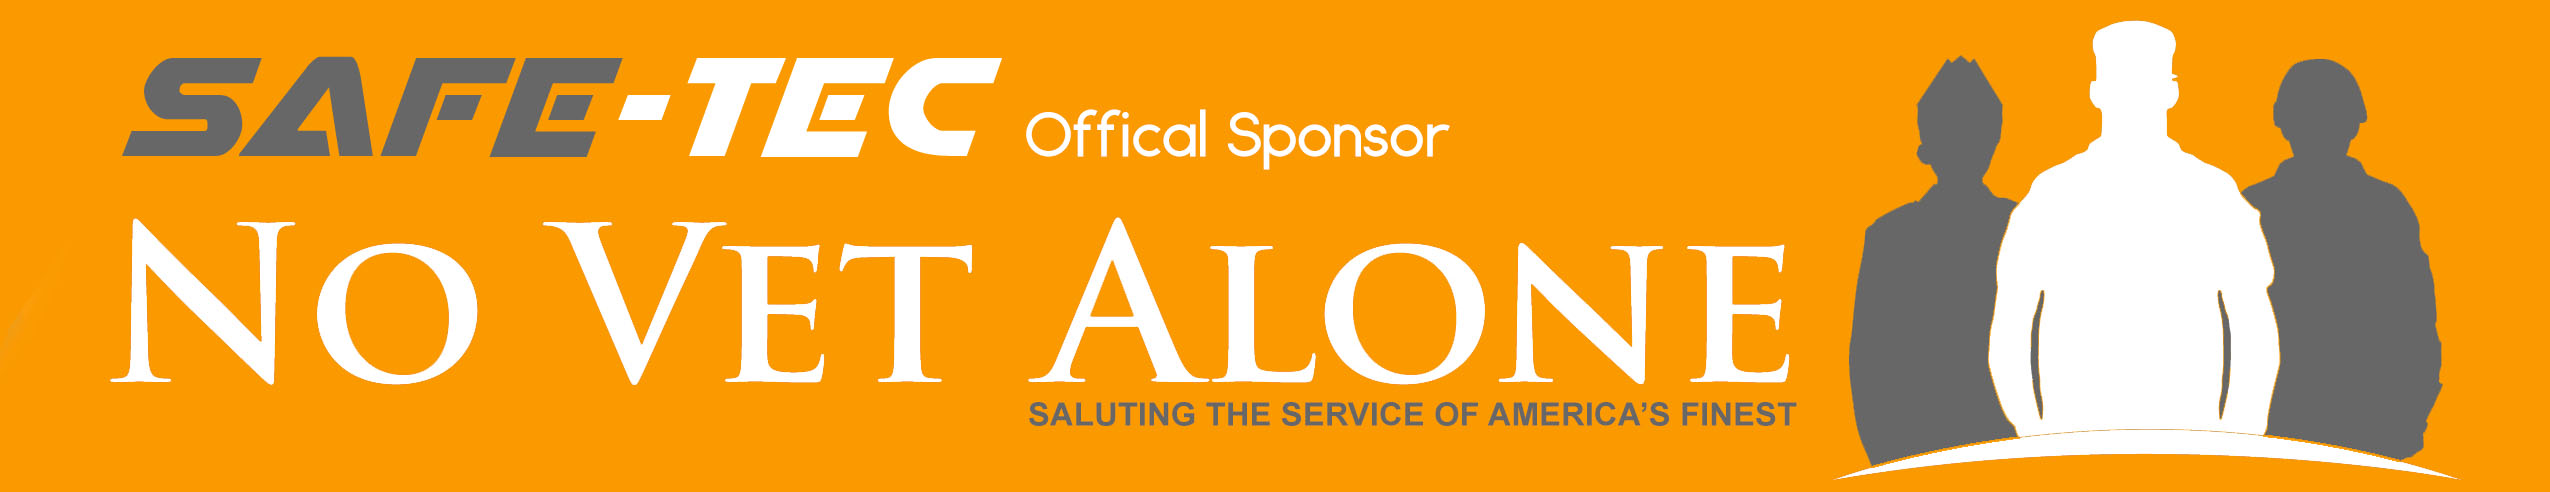 Safe-Tec is official sponsor of No Vet Alone.